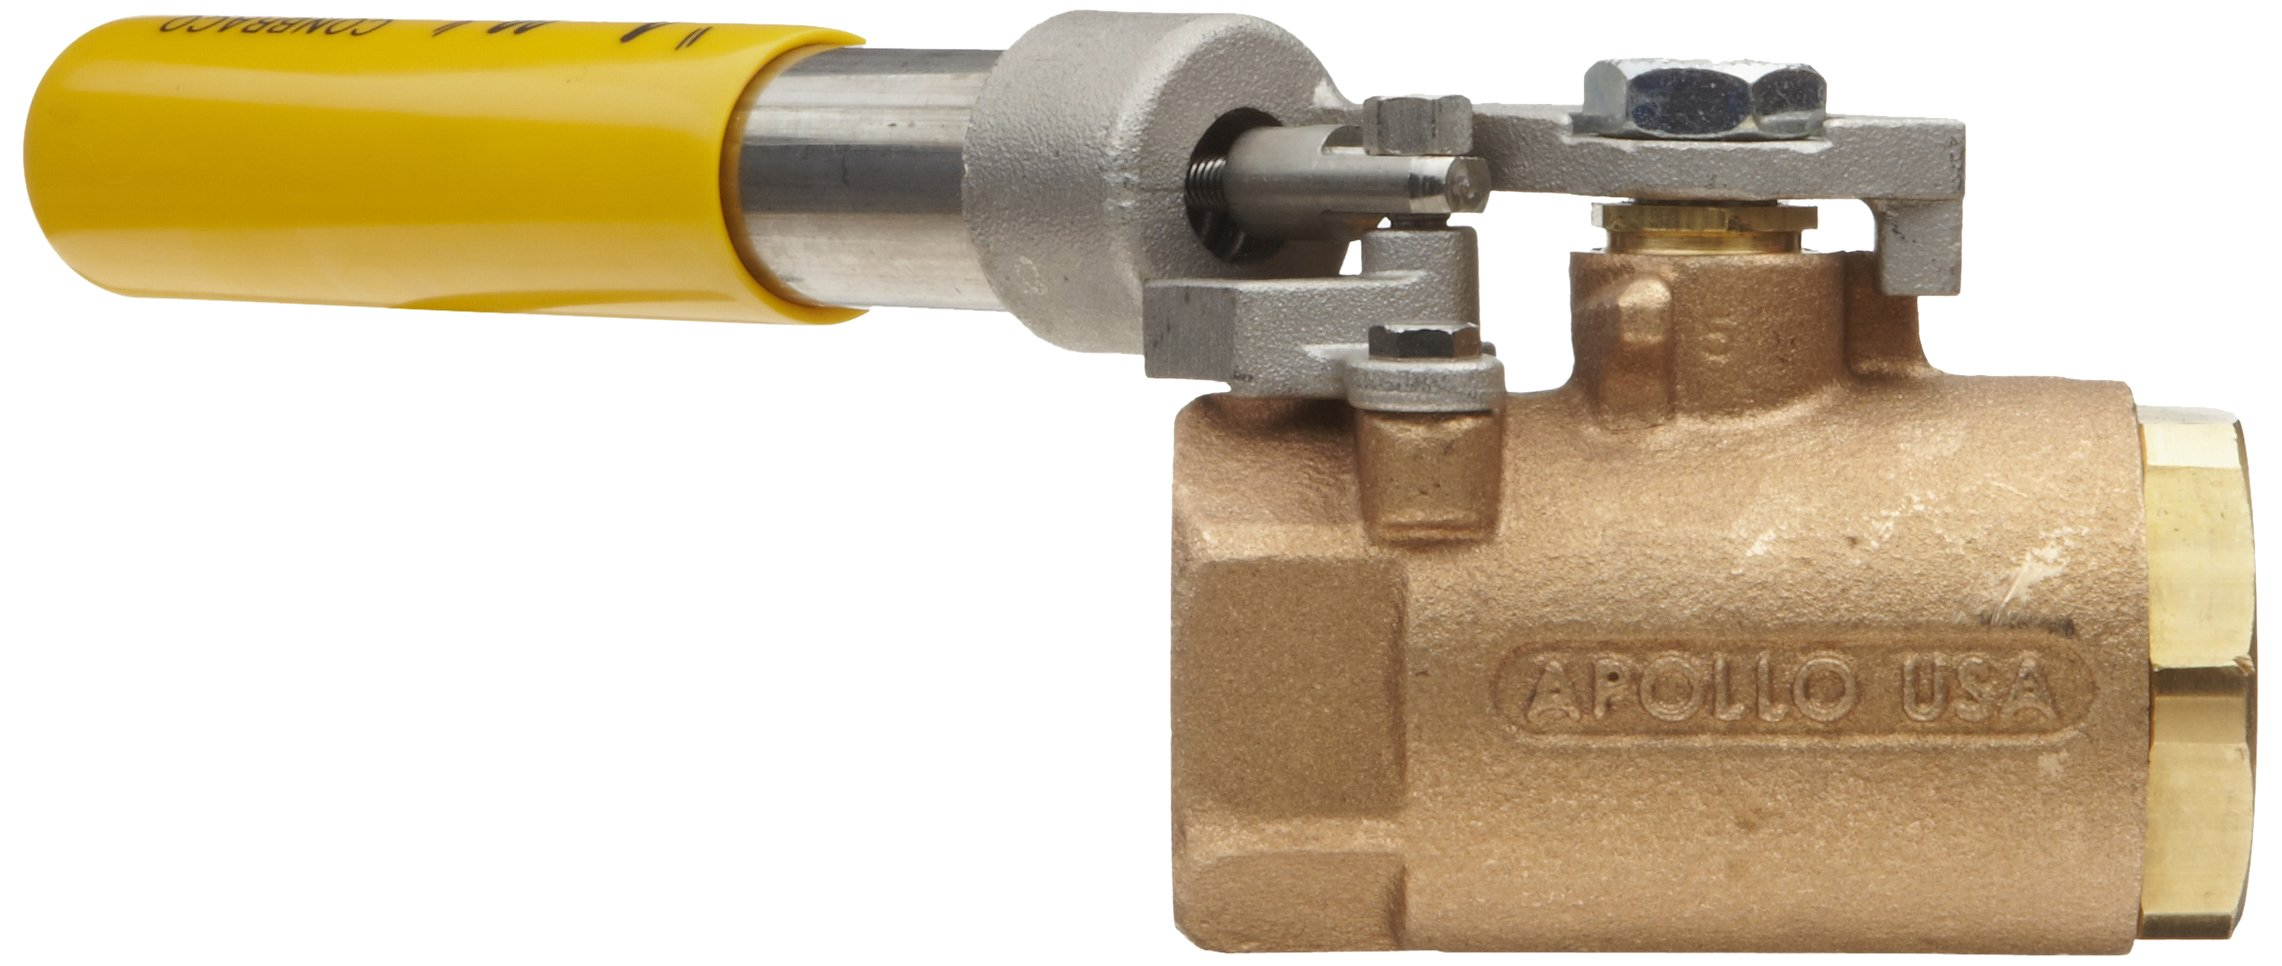 Apollo 71-500 Series Bronze Ball Valve, Two Piece, Inline, Spring-Close Lever, 3/4'' NPT Female by Apollo Valve (Image #2)